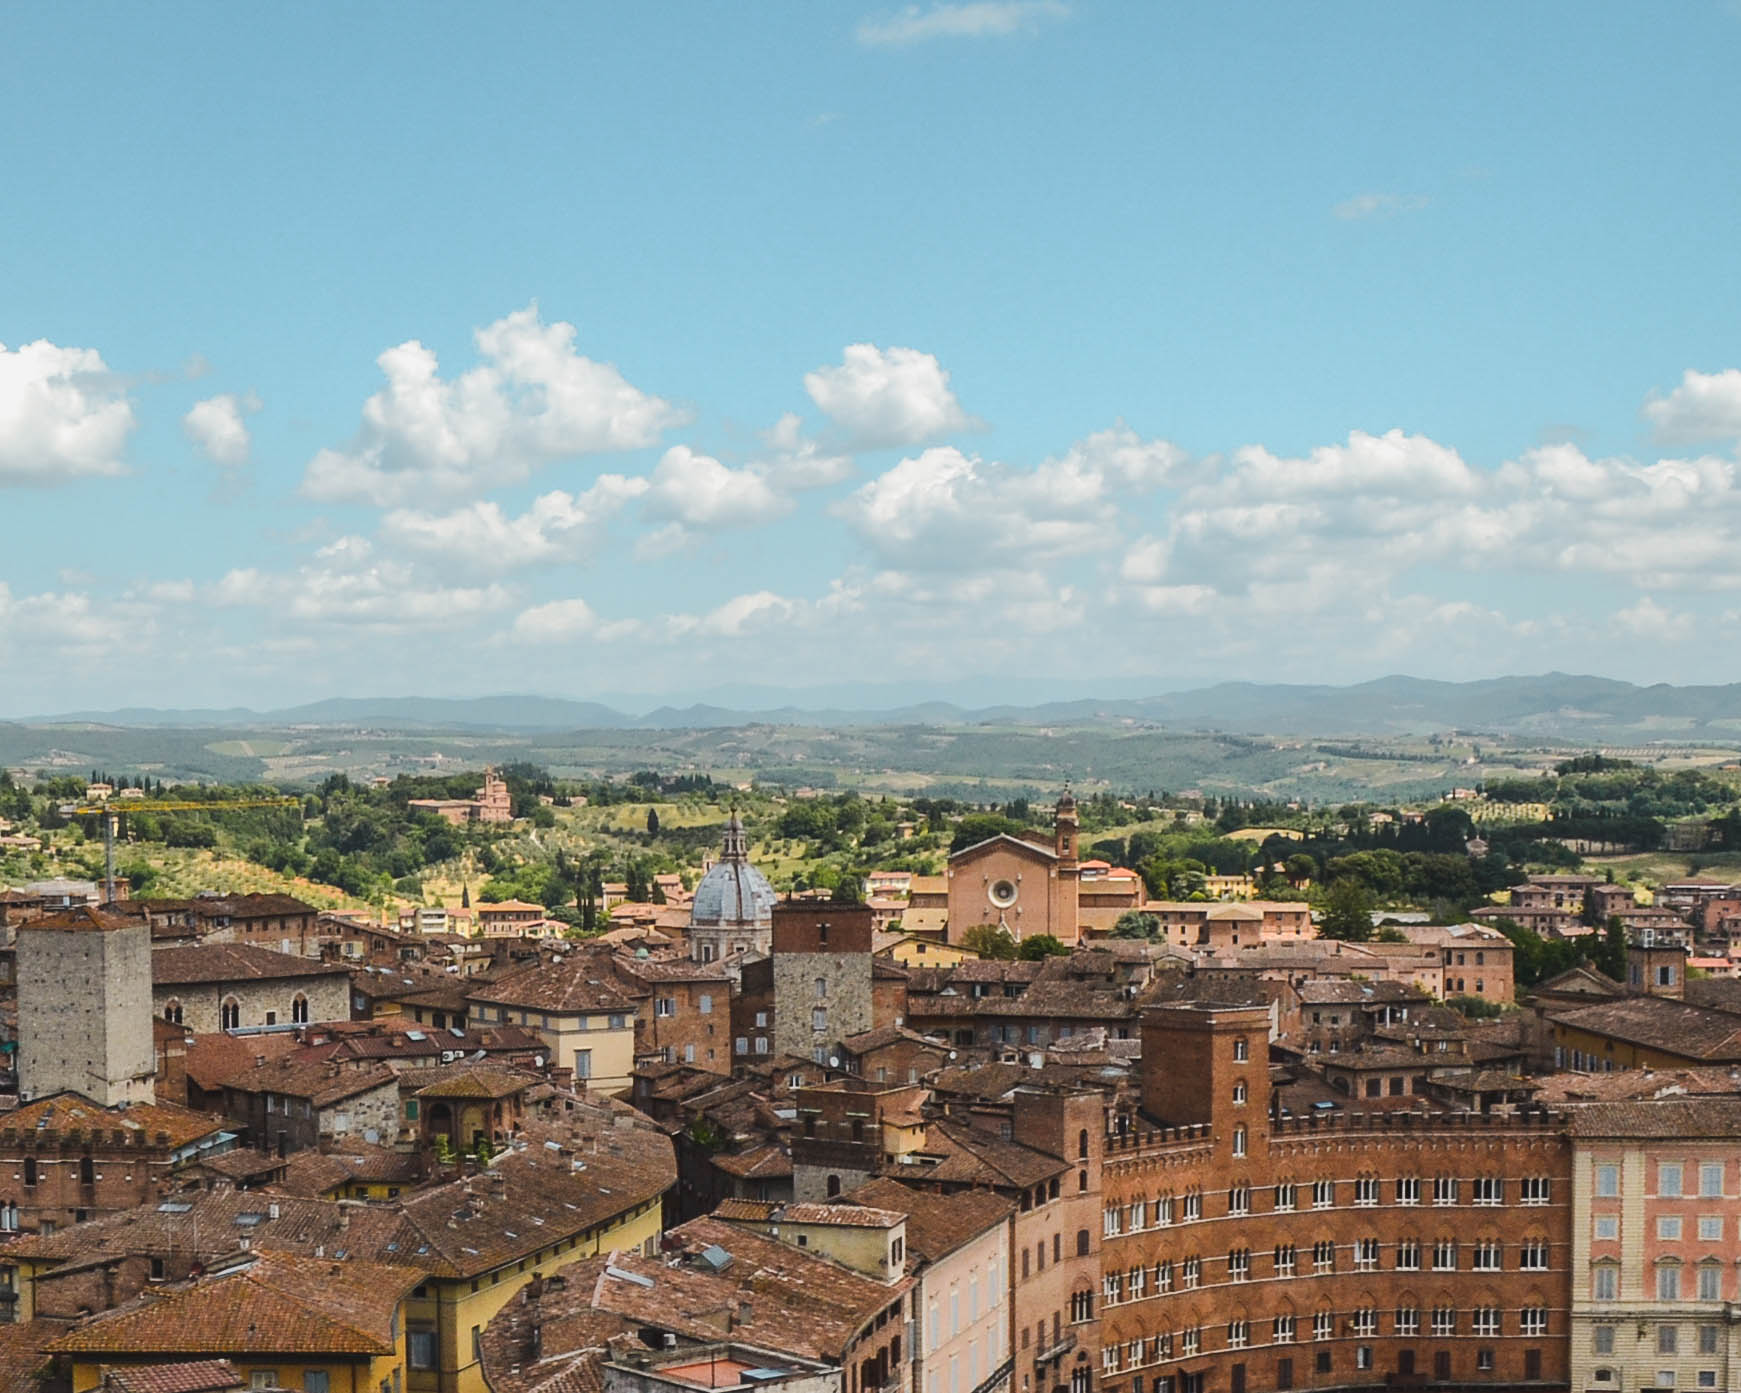 10 Tips For Visiting Italy - 10 quick tips to help you prepare for your trip to Italy!